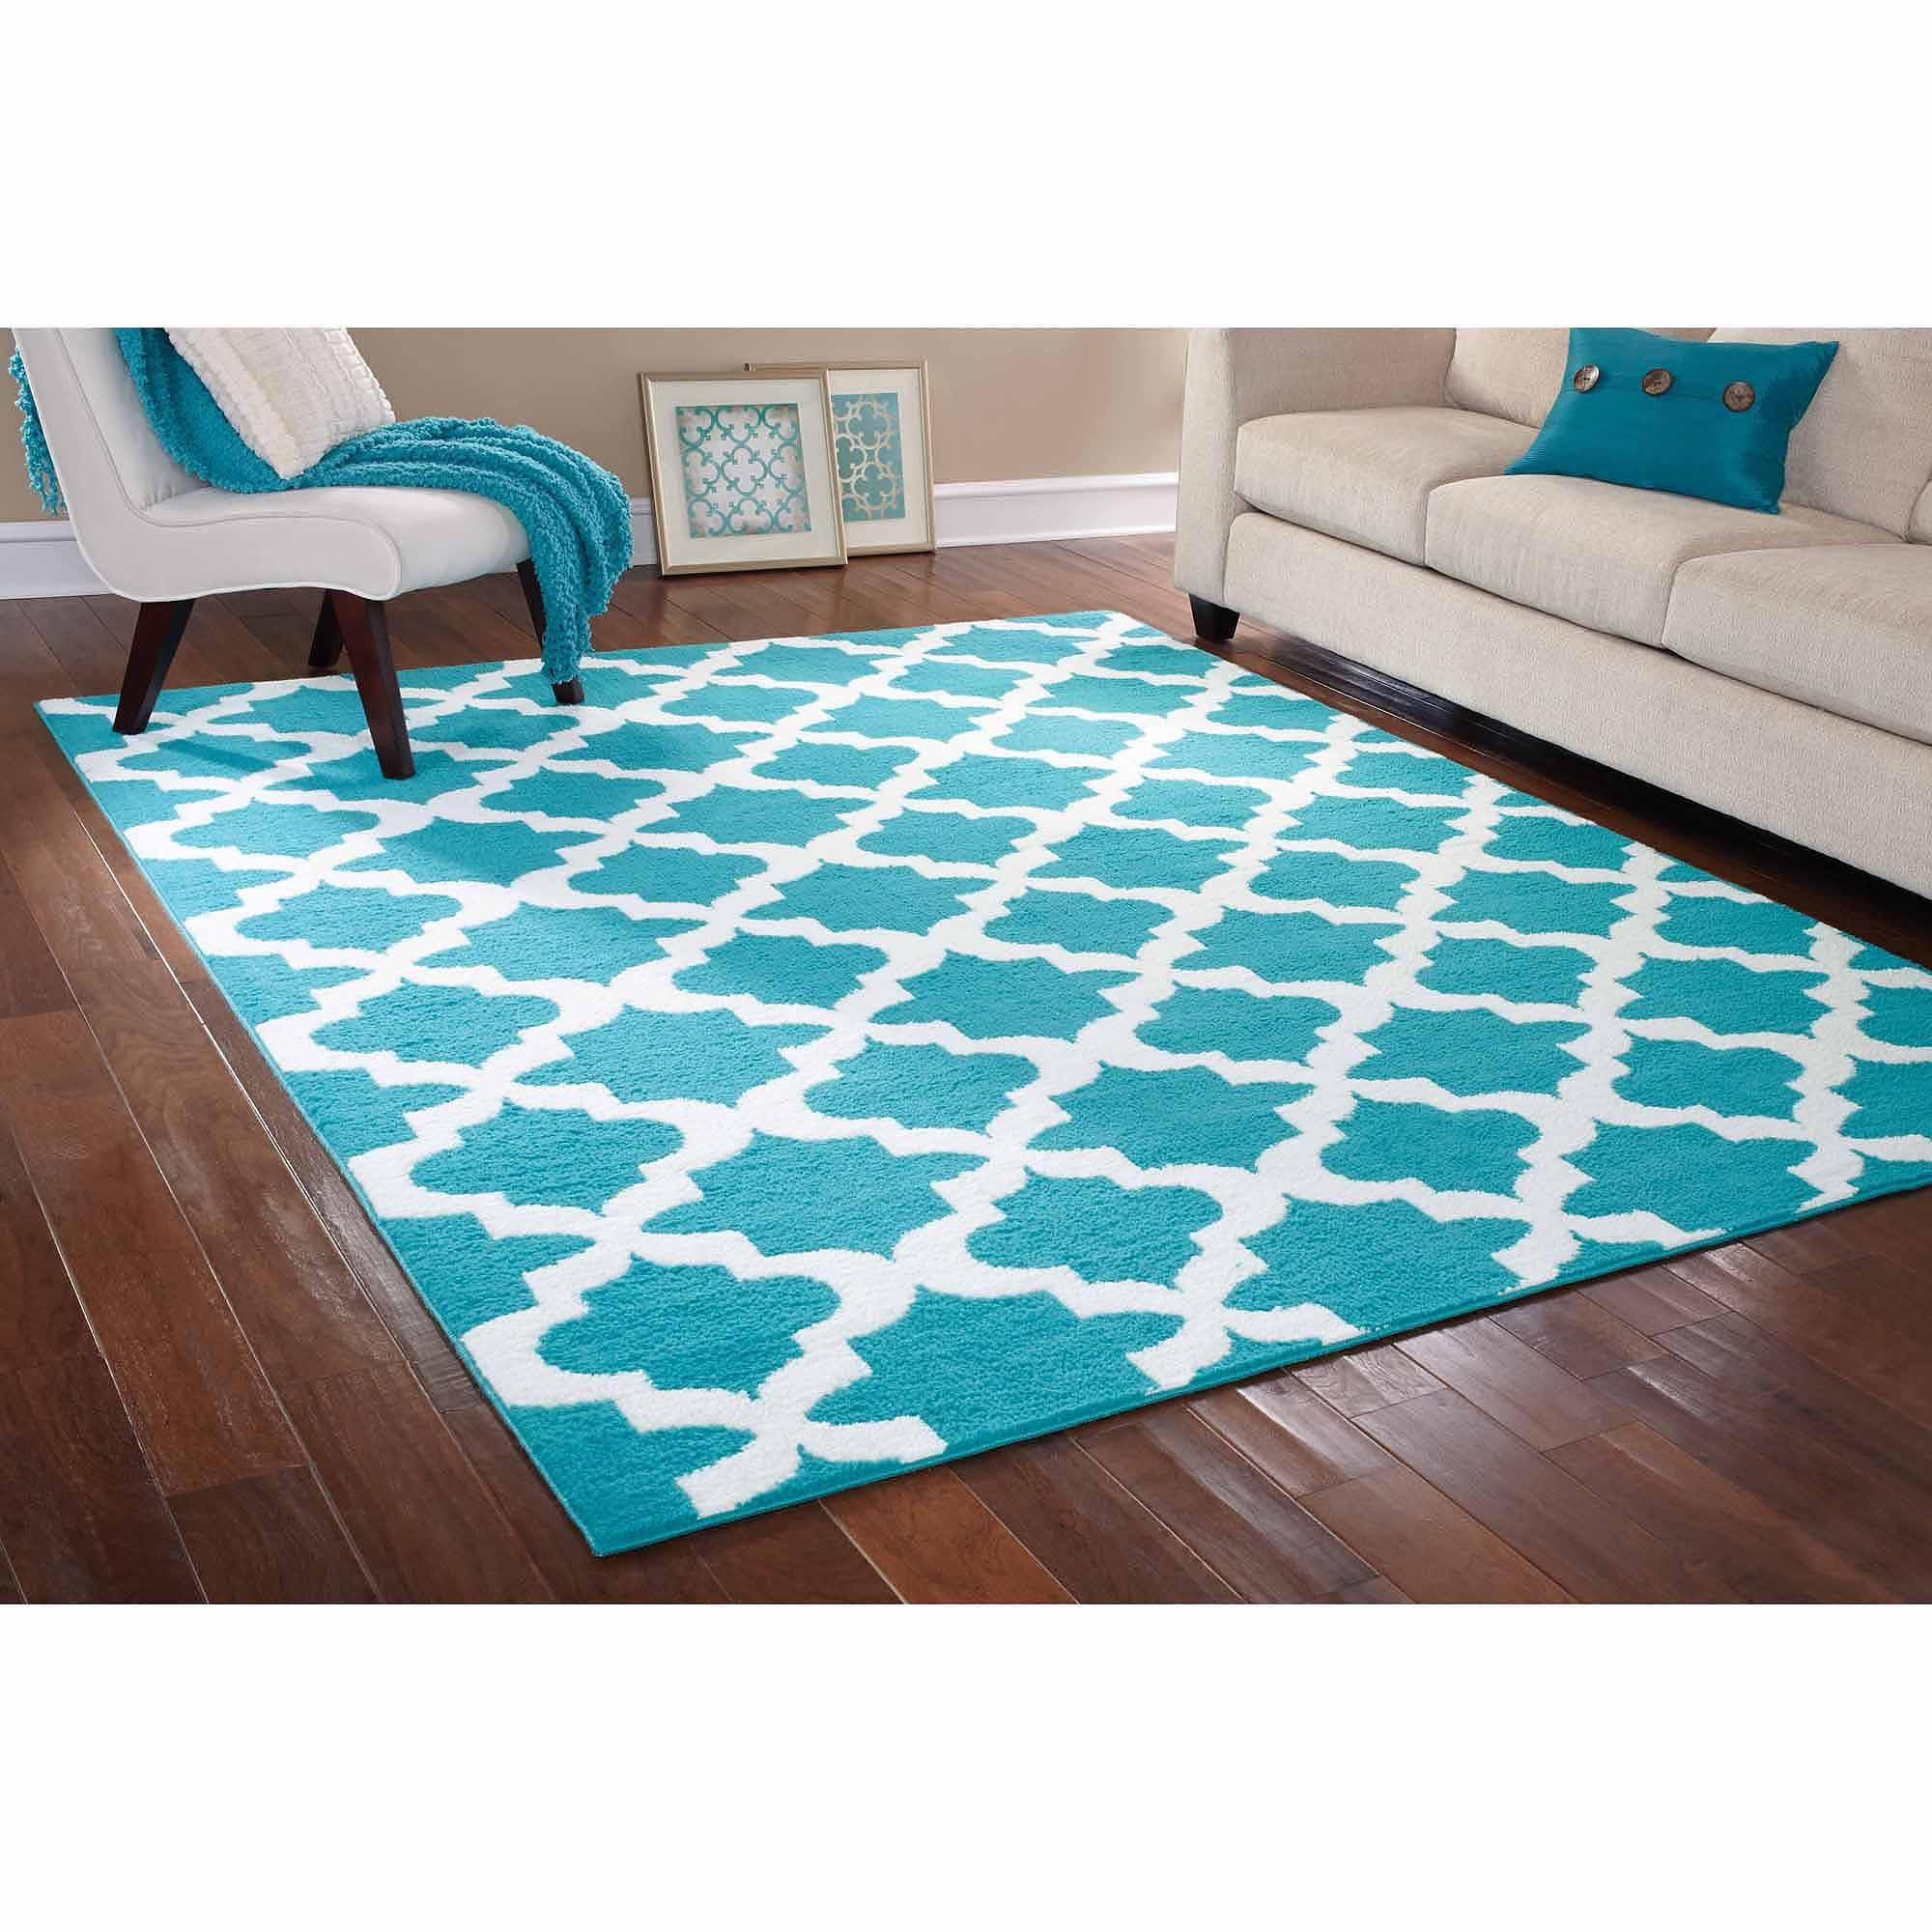 Cool ... Marvelous Design Ideas Turquoise Throw Rugs Creative Floor Smooth  Turquoise Area turquoise throw rugs